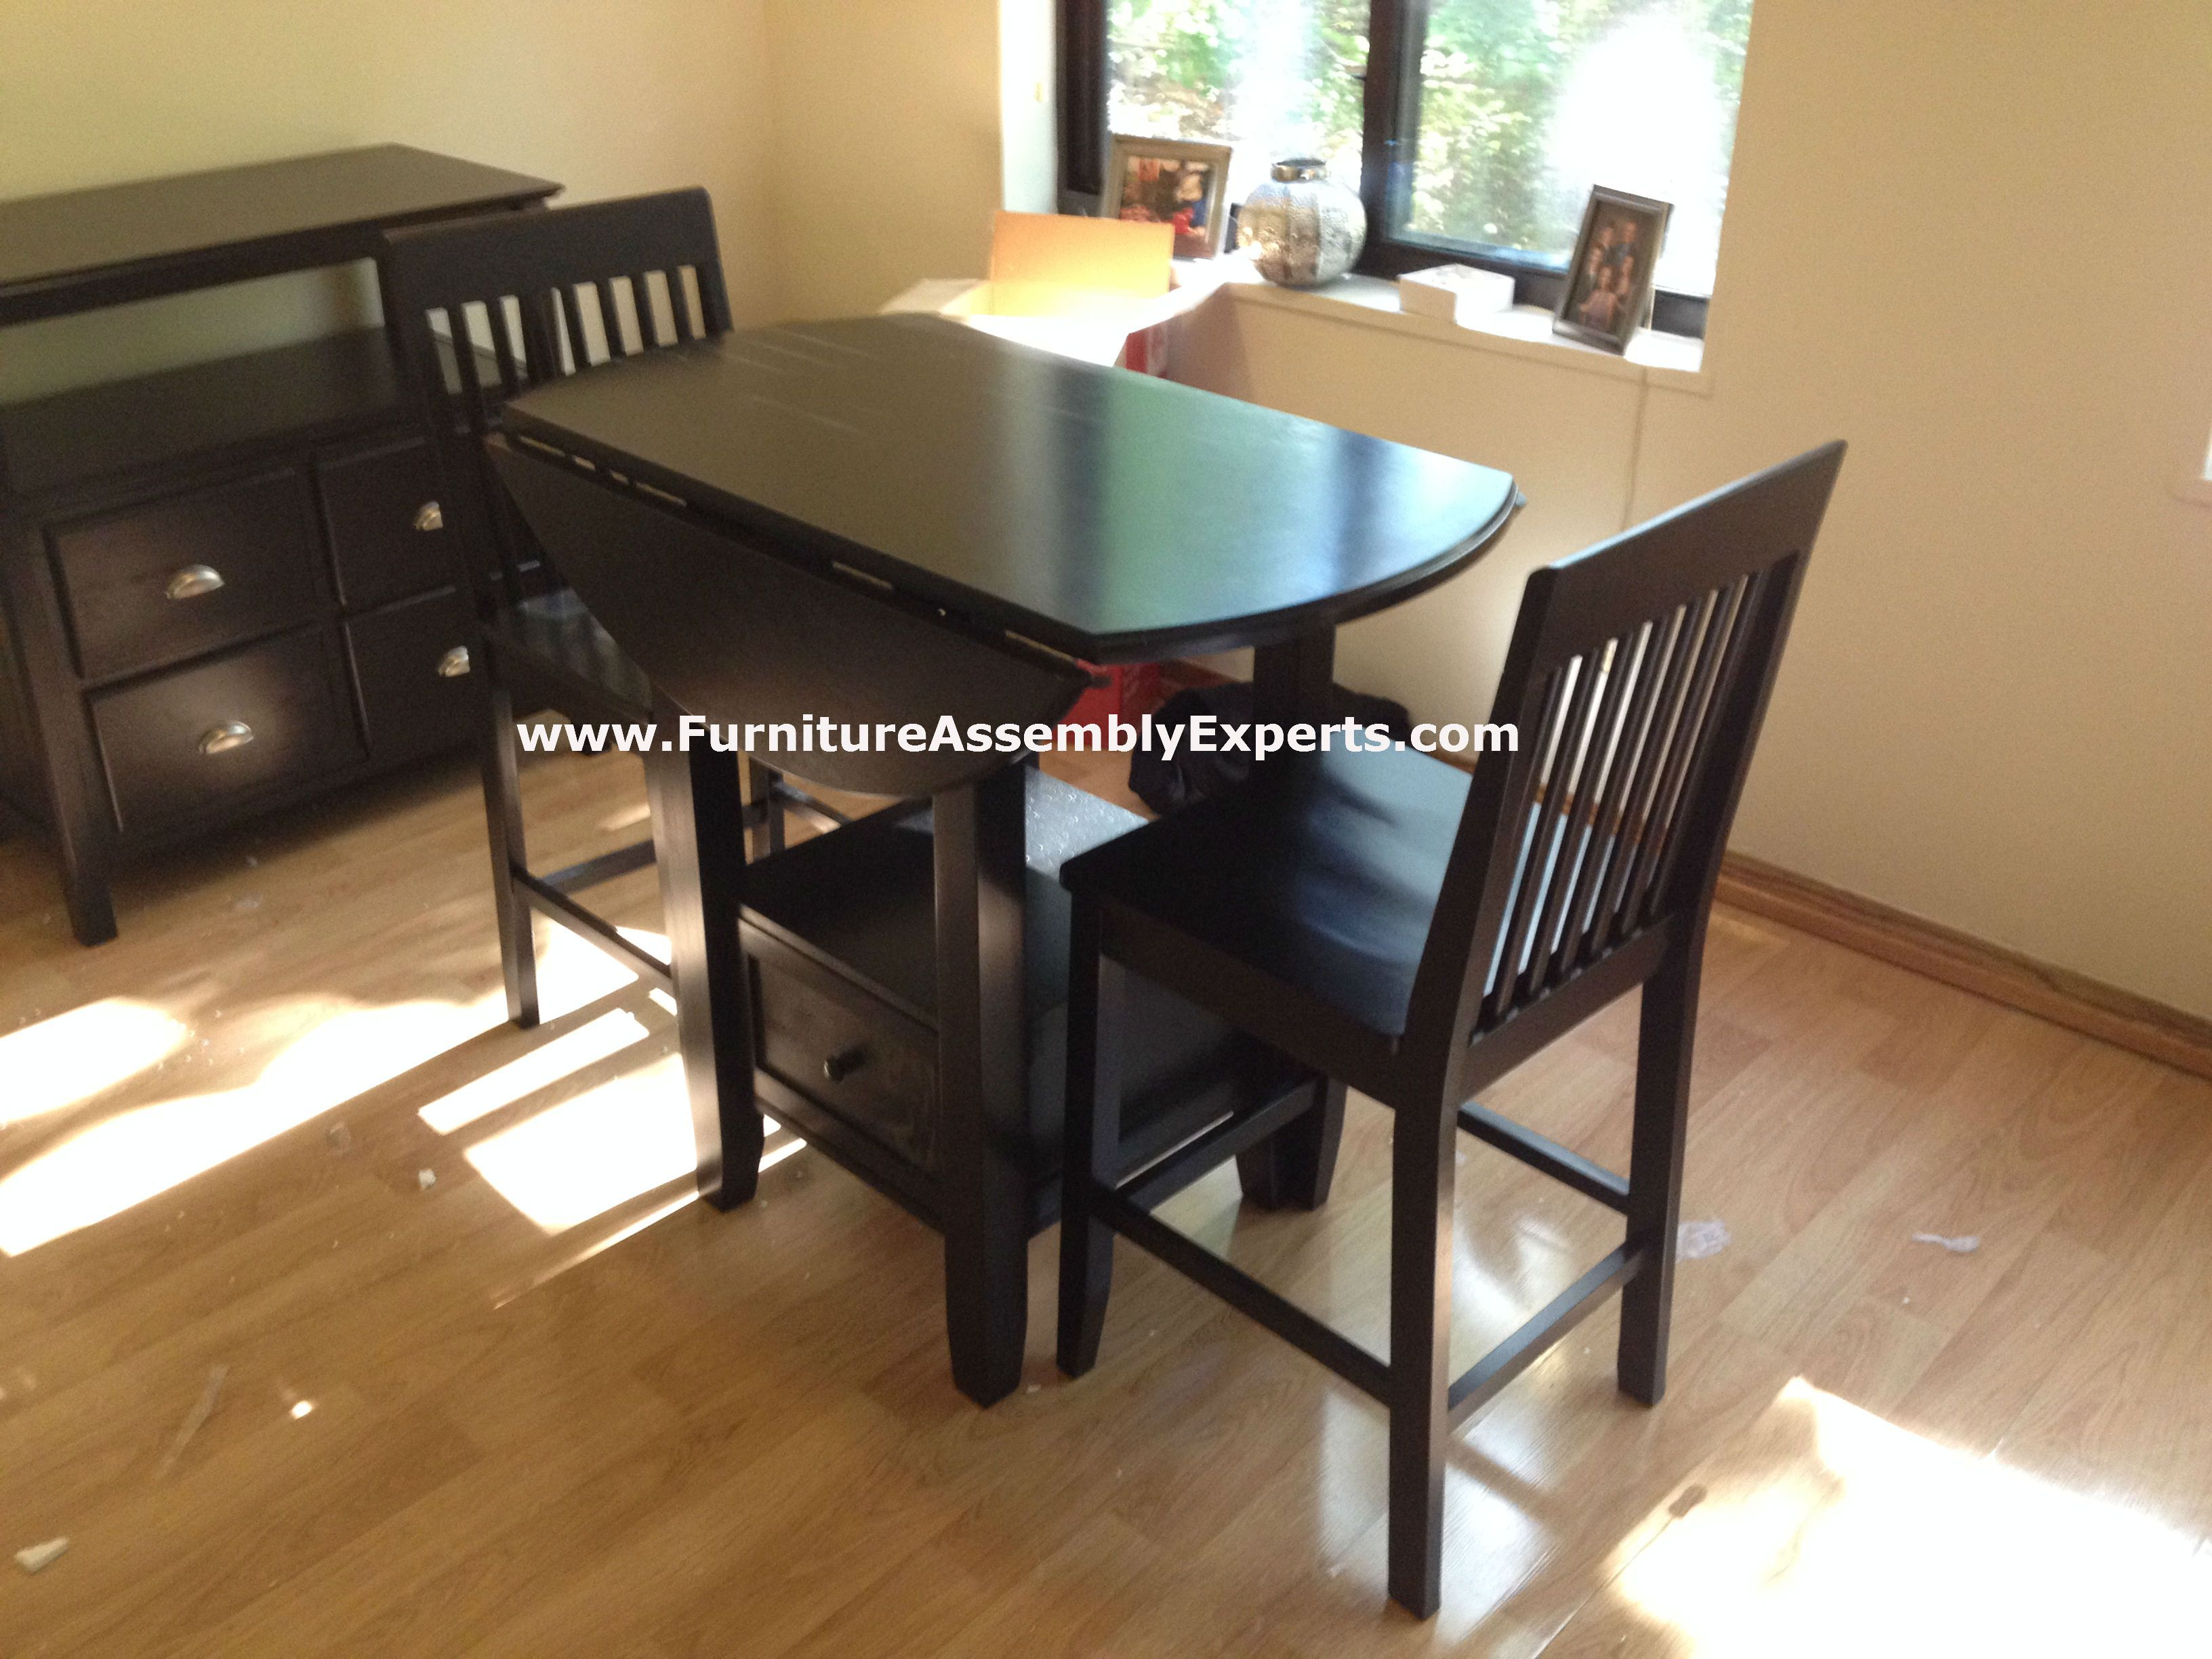 Target ThresholdTM 3 Piece Storage Pub Dining Set Assembled In Washington DC By Furniture